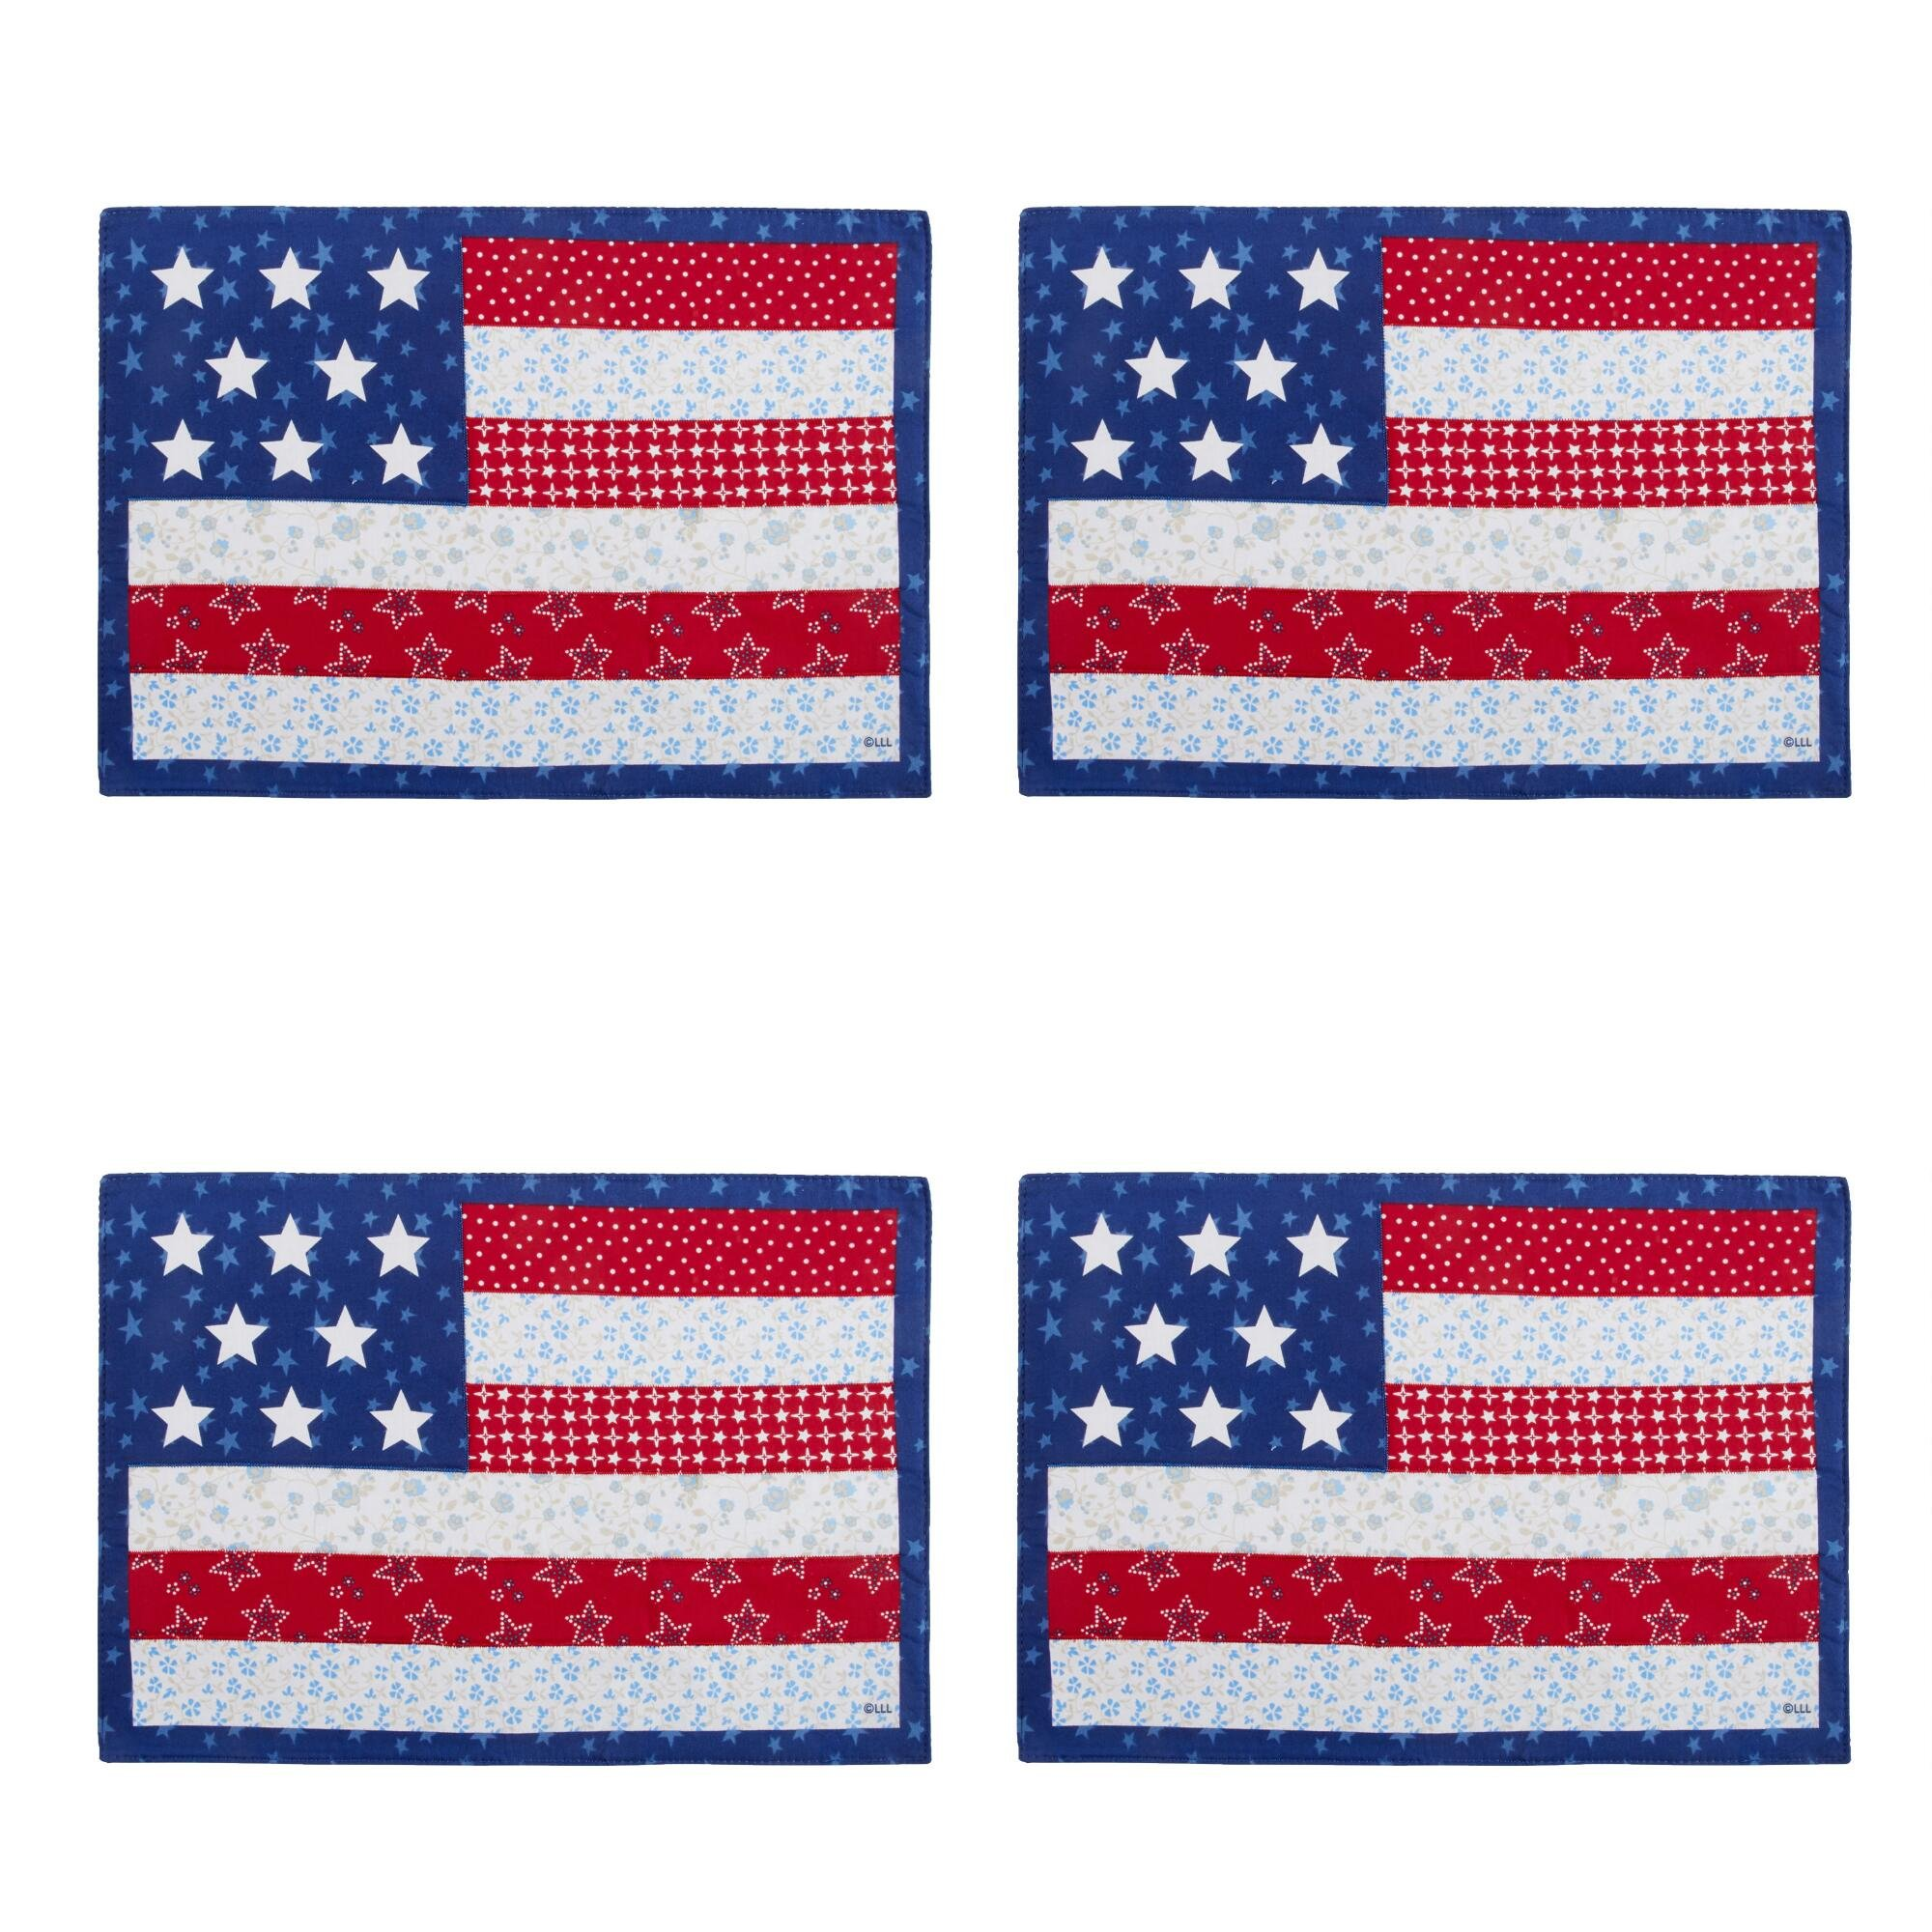 Nantucket Home Patriotic Stars and Stripes Applique Cotton Blend Placemats, Set of 4